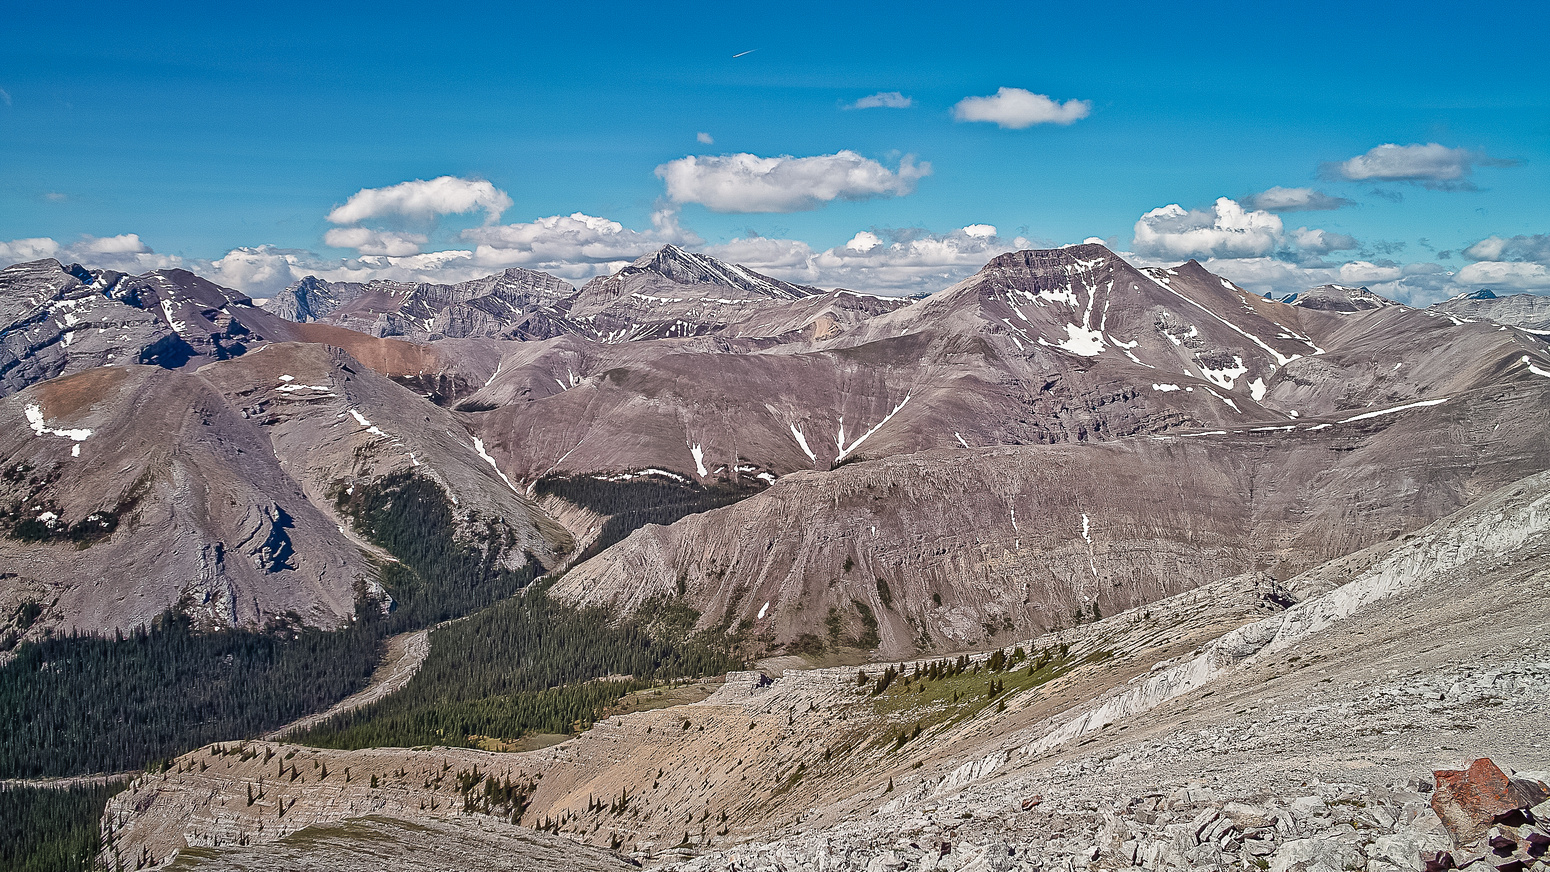 Mount Fisher is the high one in the center, Fullerton to the right.